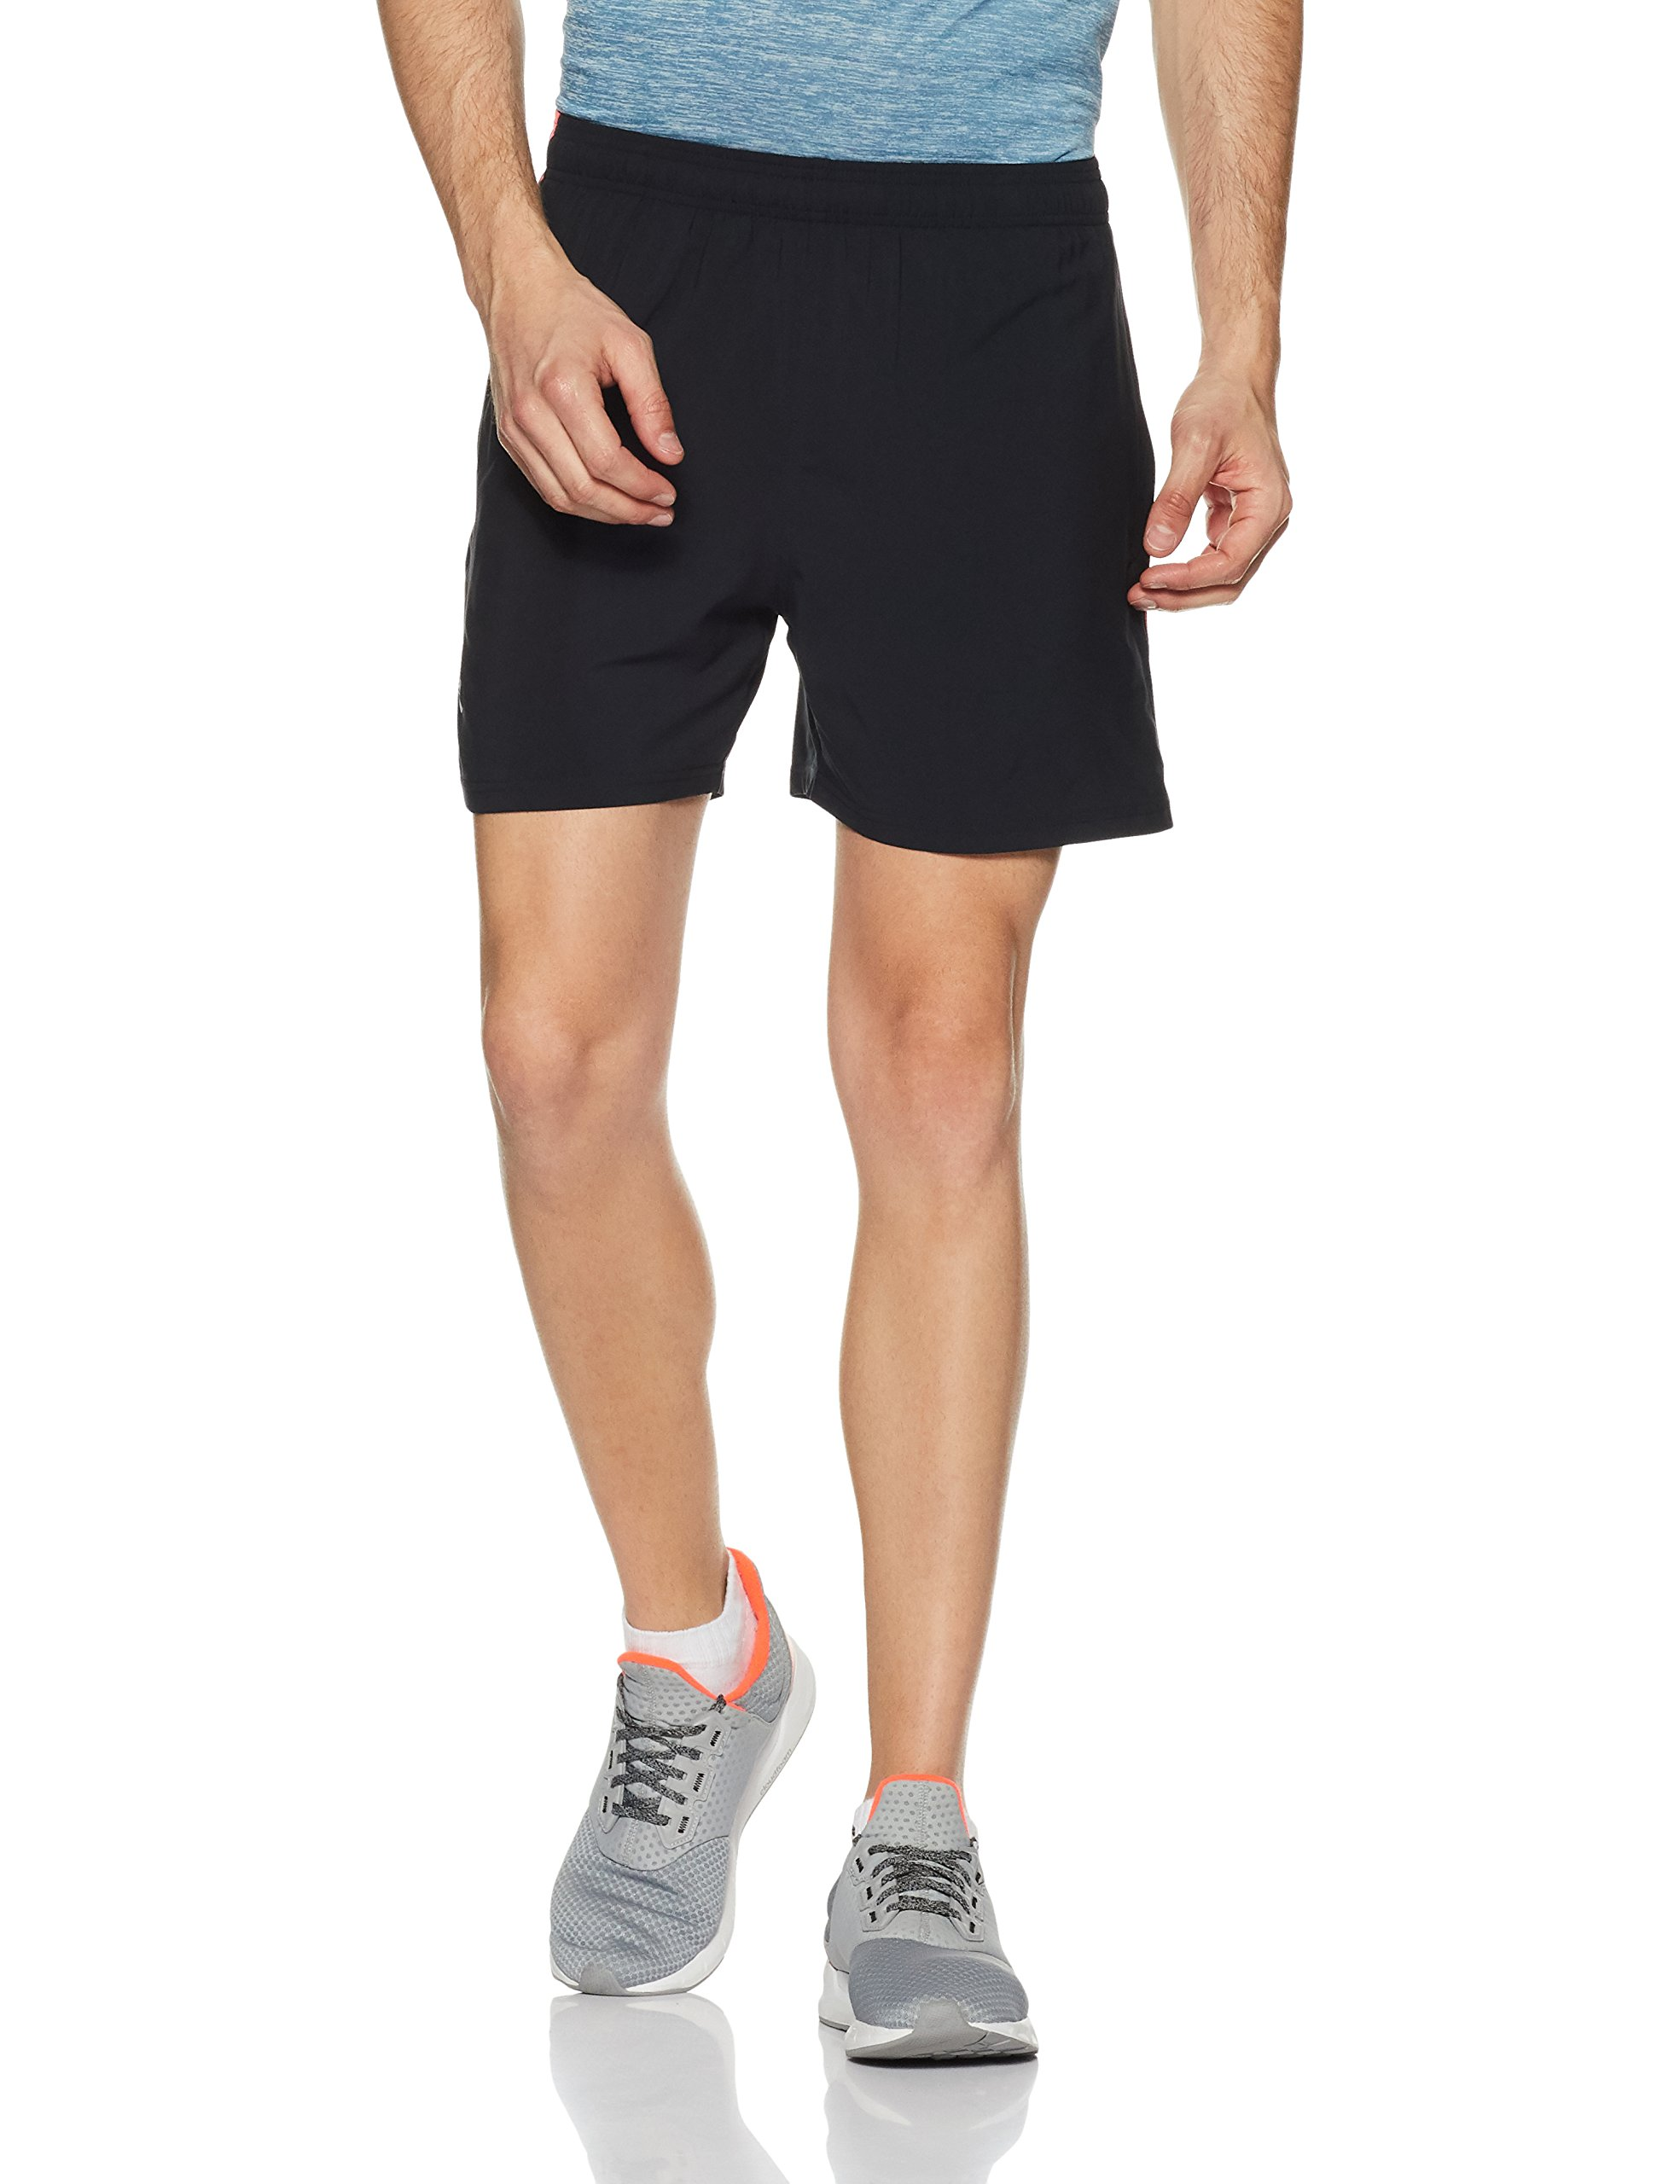 Under Armour Men's Launch 5'' Shorts,Black /Reflective, Small by Under Armour (Image #1)